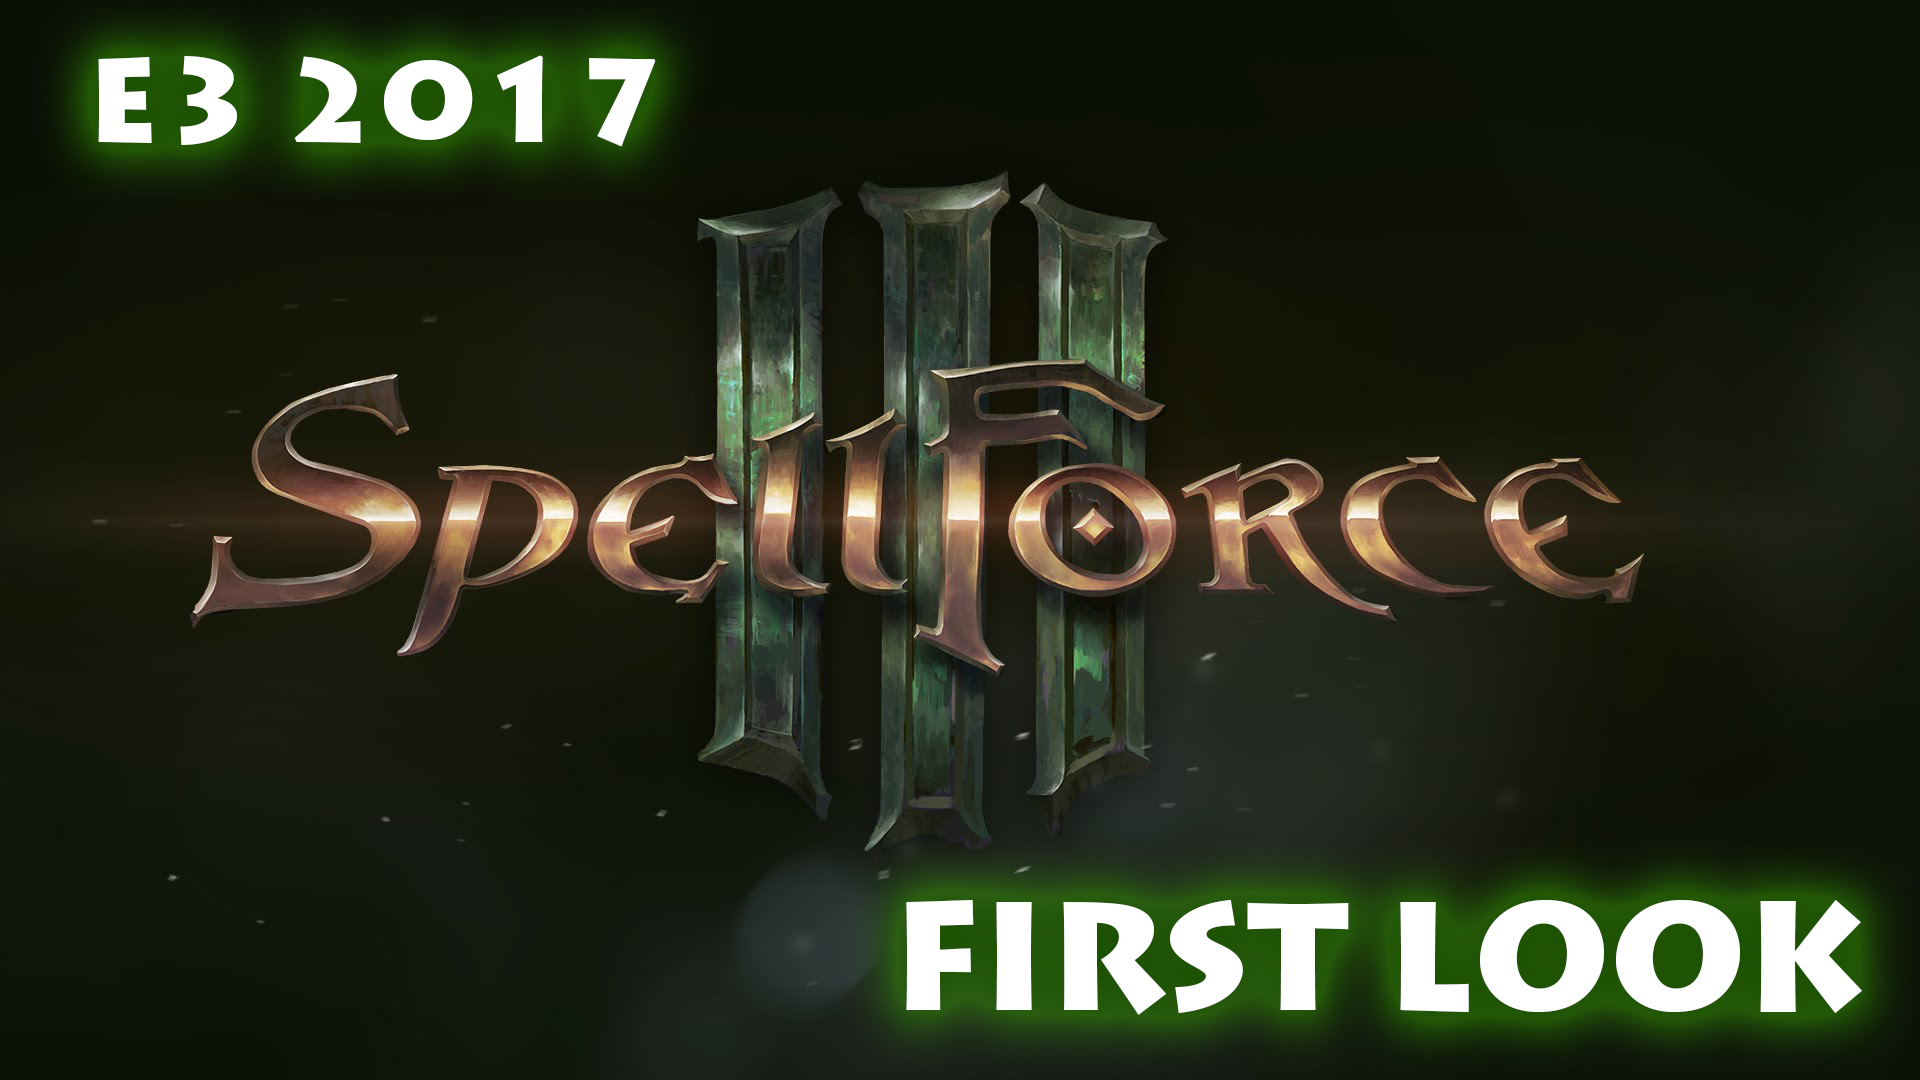 Darren's thoughts on the Spellforce 3 Multiplayer demo he played at E3, as read by Colton.